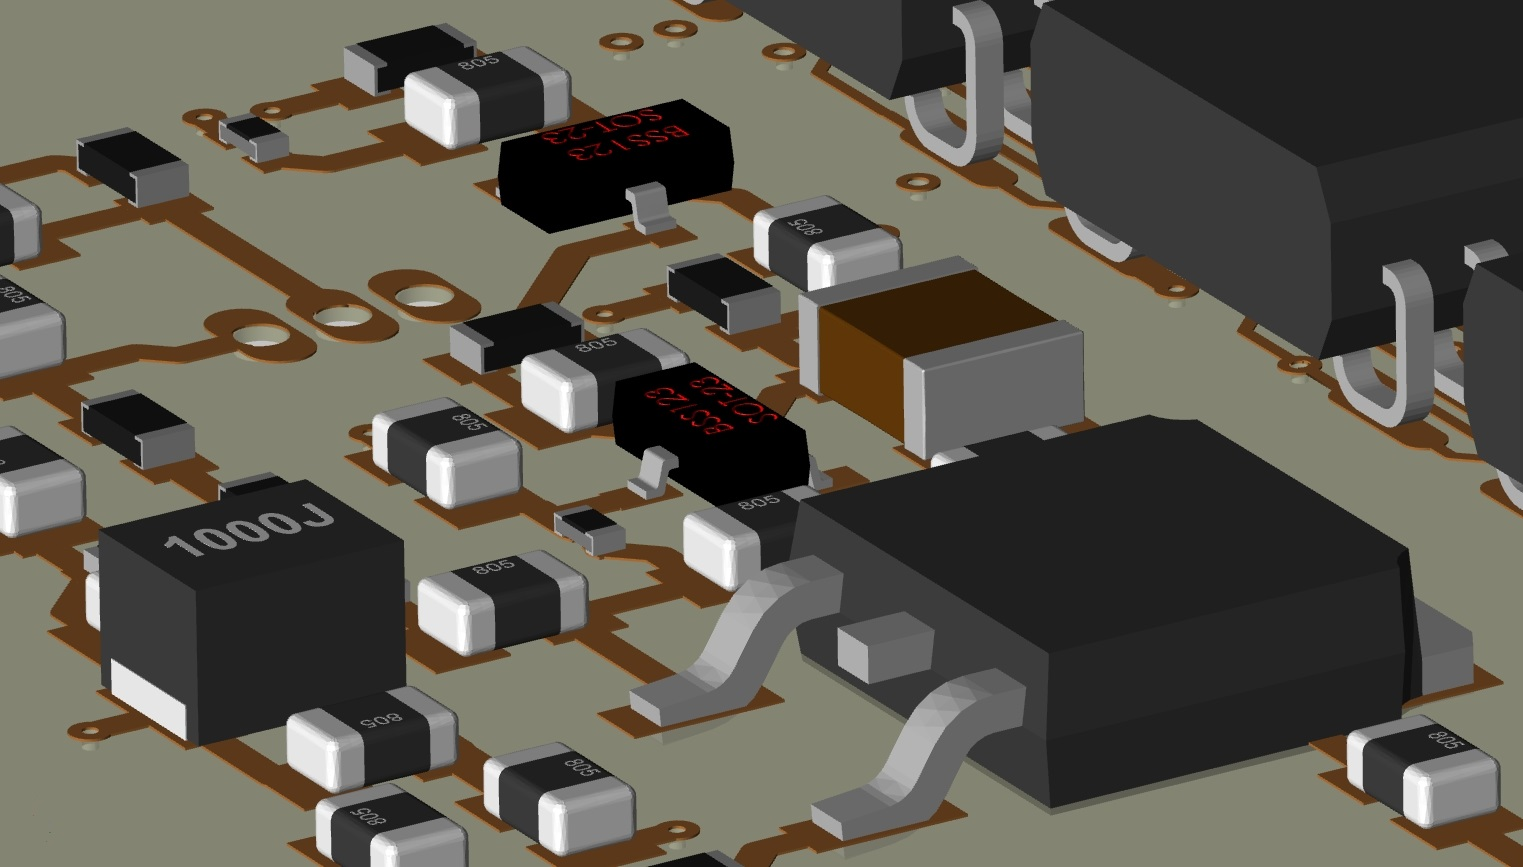 3D rendering of surface mount power components on a printed circuit board